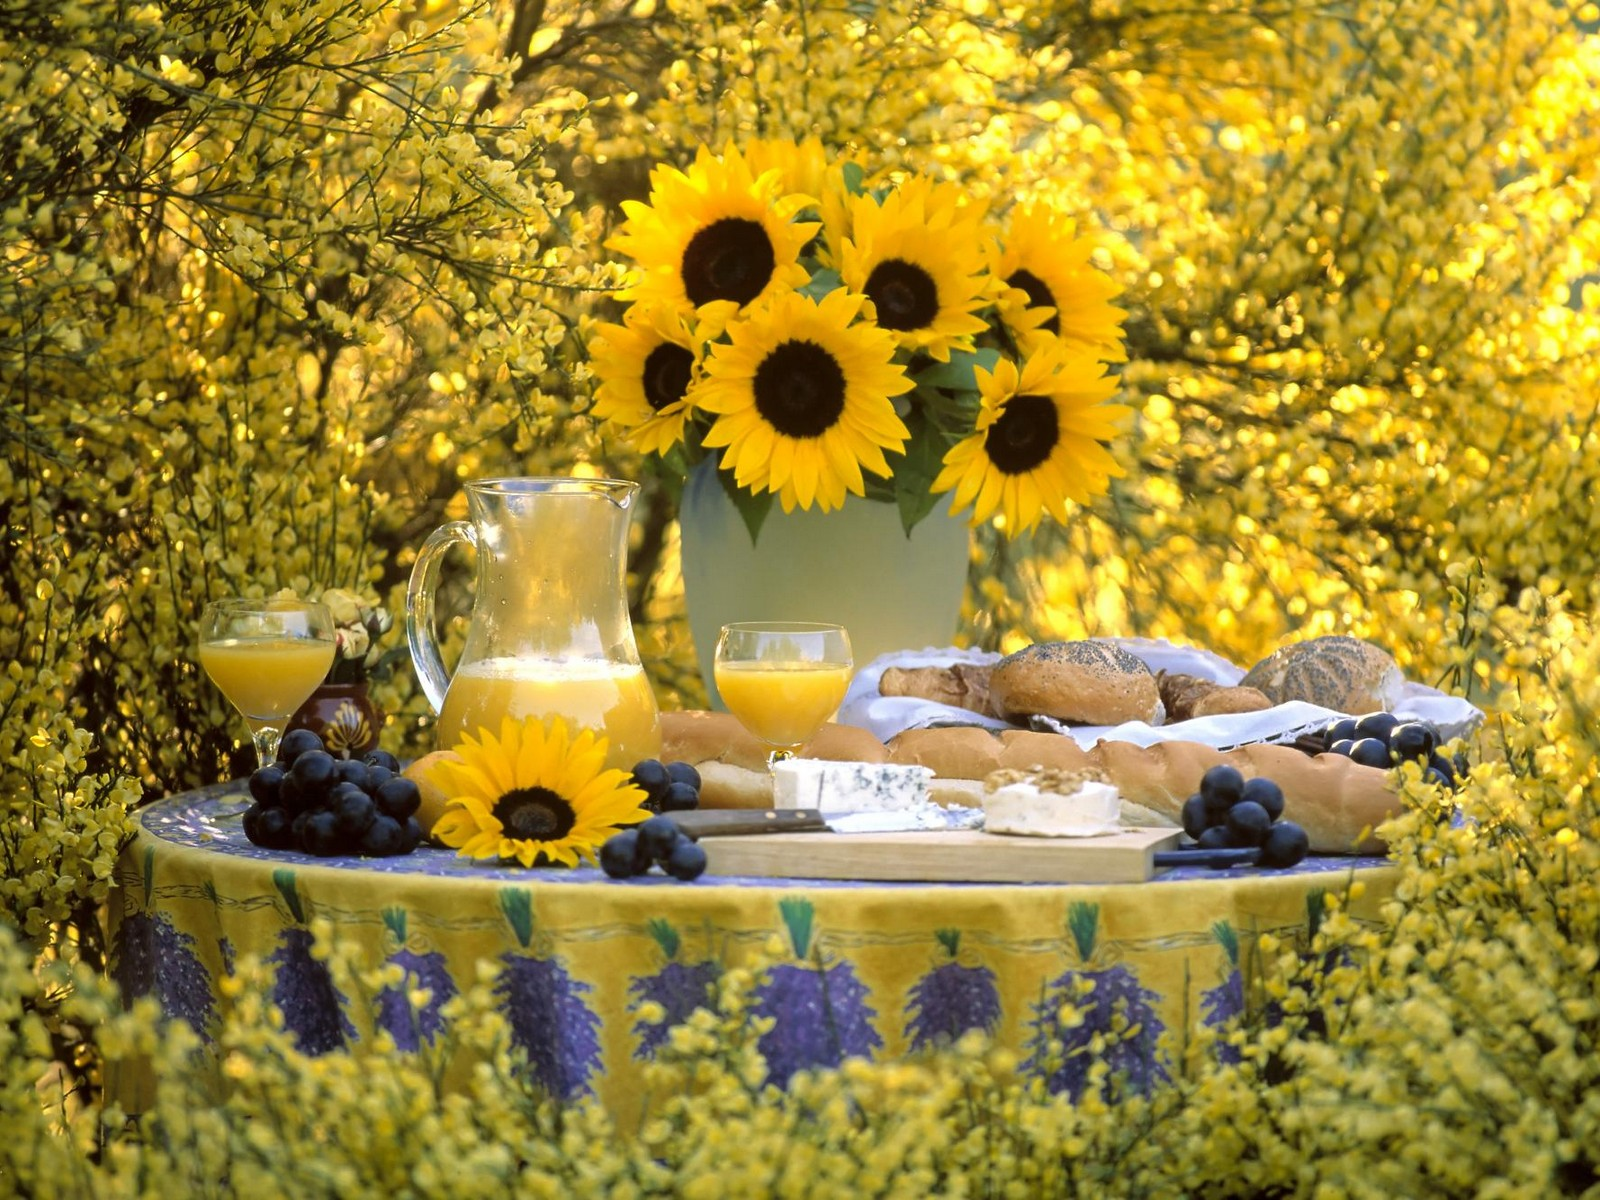 Summer Picnic Wallpapers, Photos, Pictures and Backgrounds